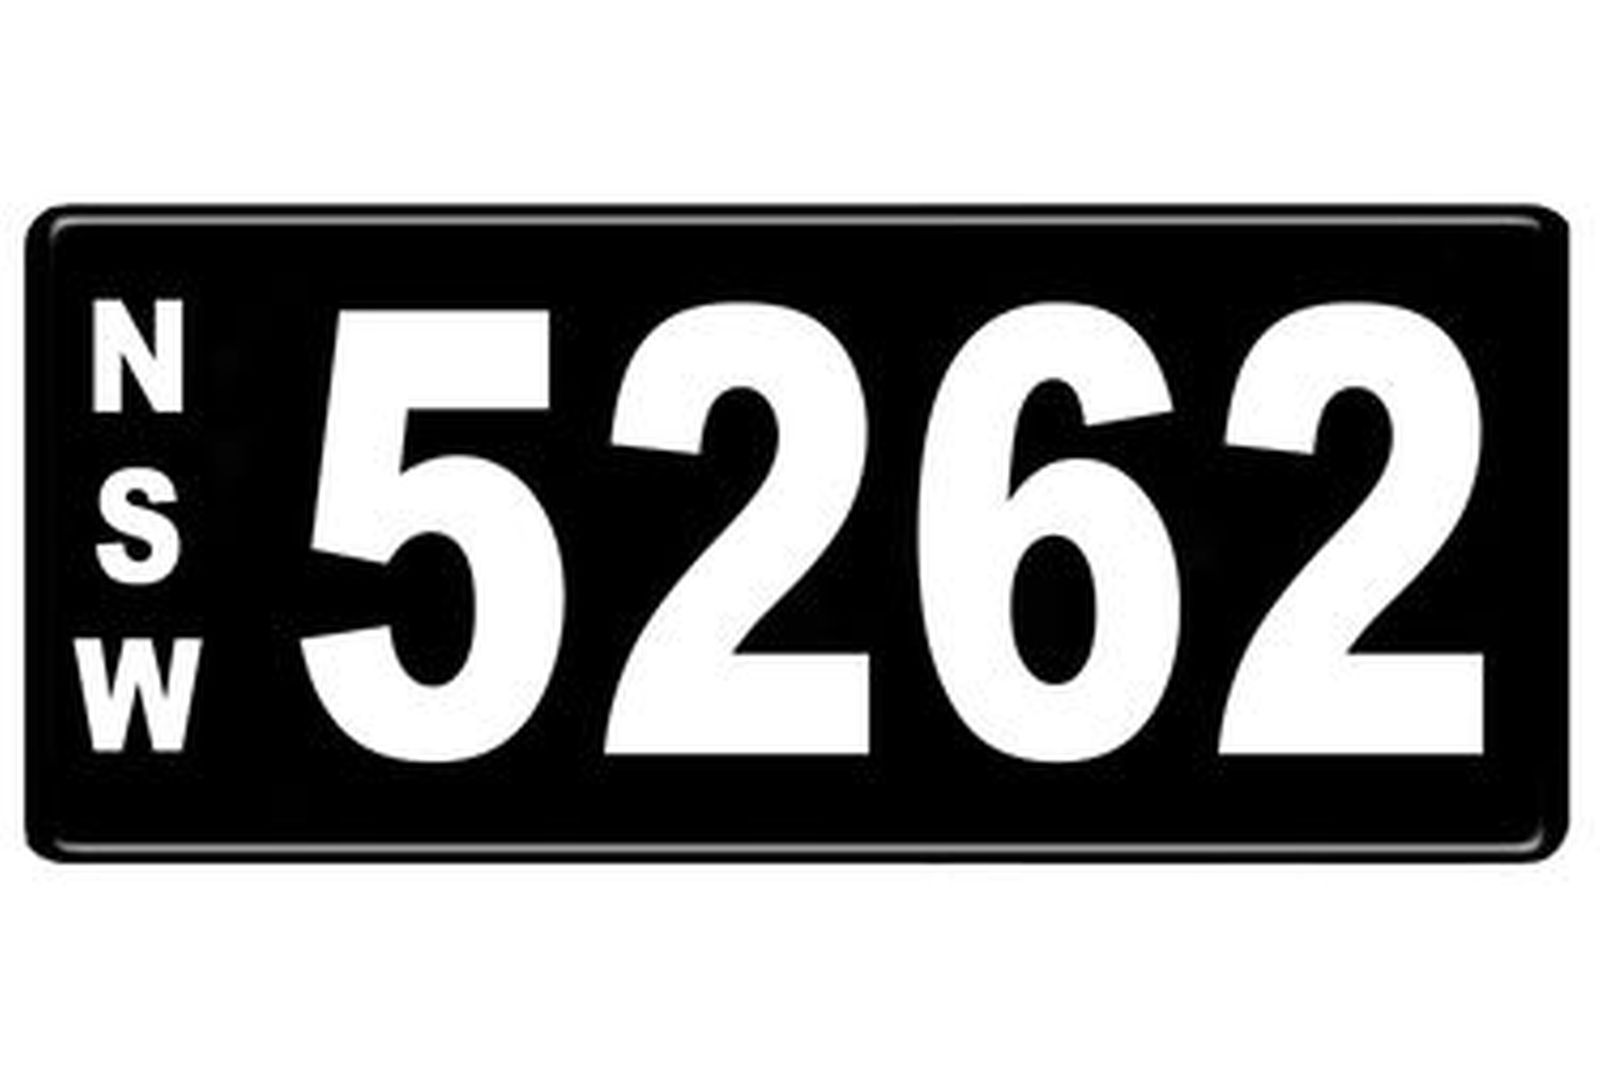 Number Plates - NSW Numerical Number Plates '5262'